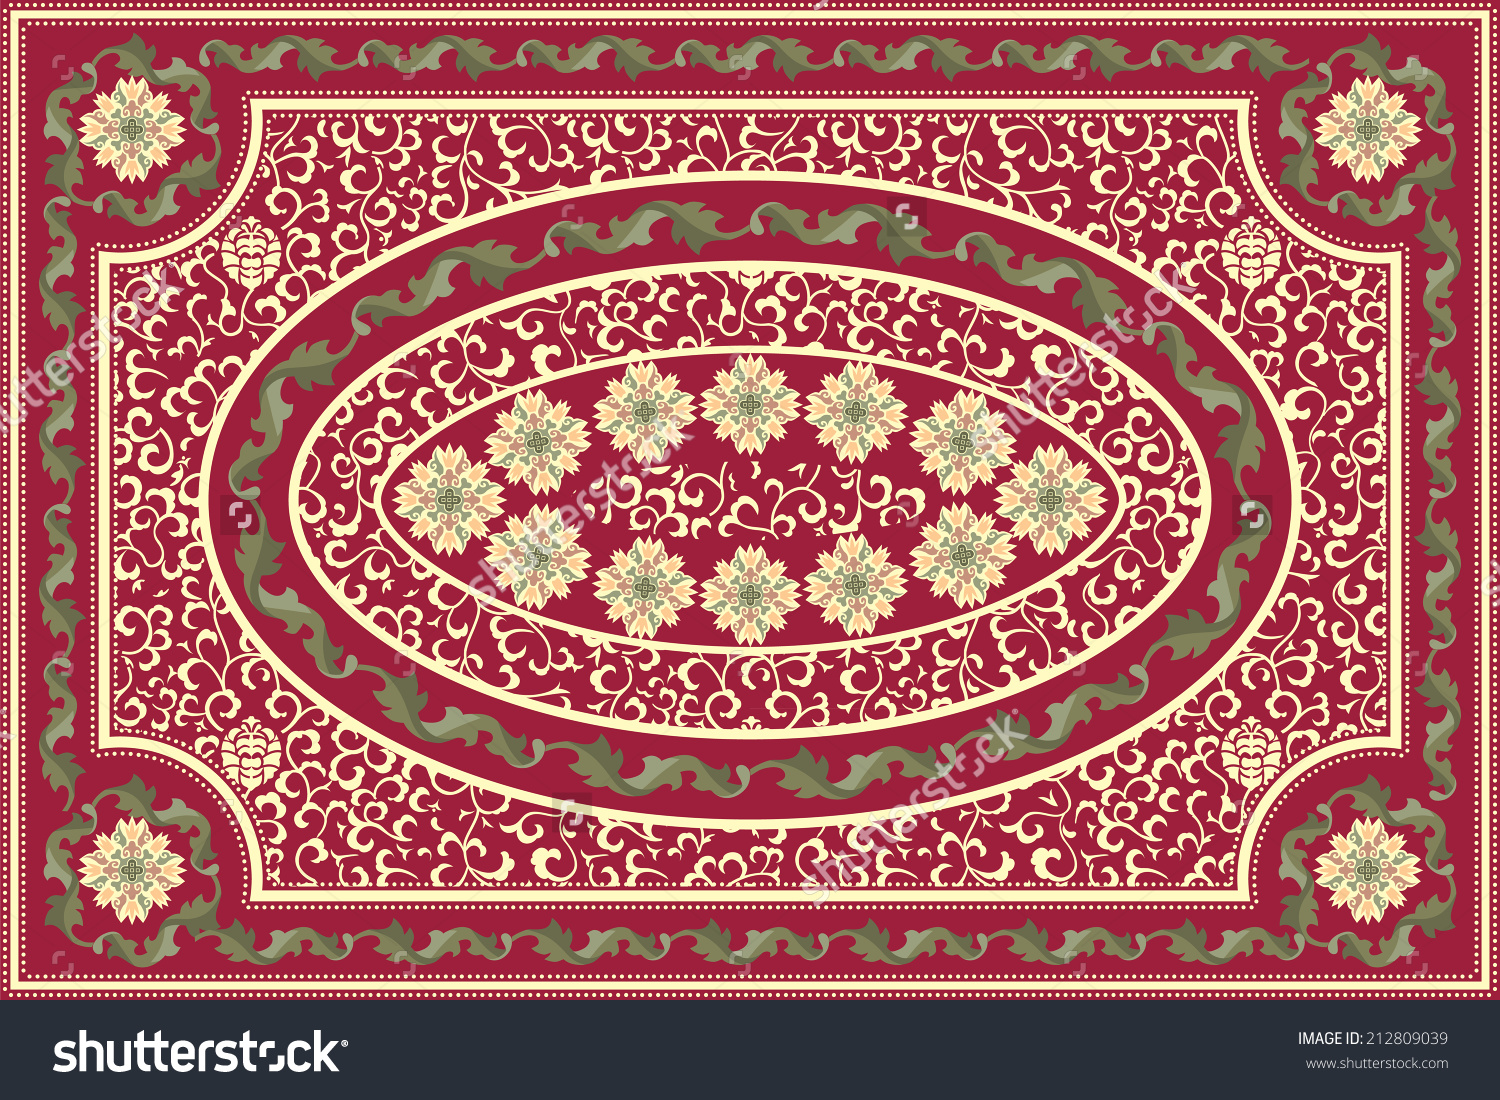 Elaborate Red Floral Carpet Design Stock Vector 212809039.